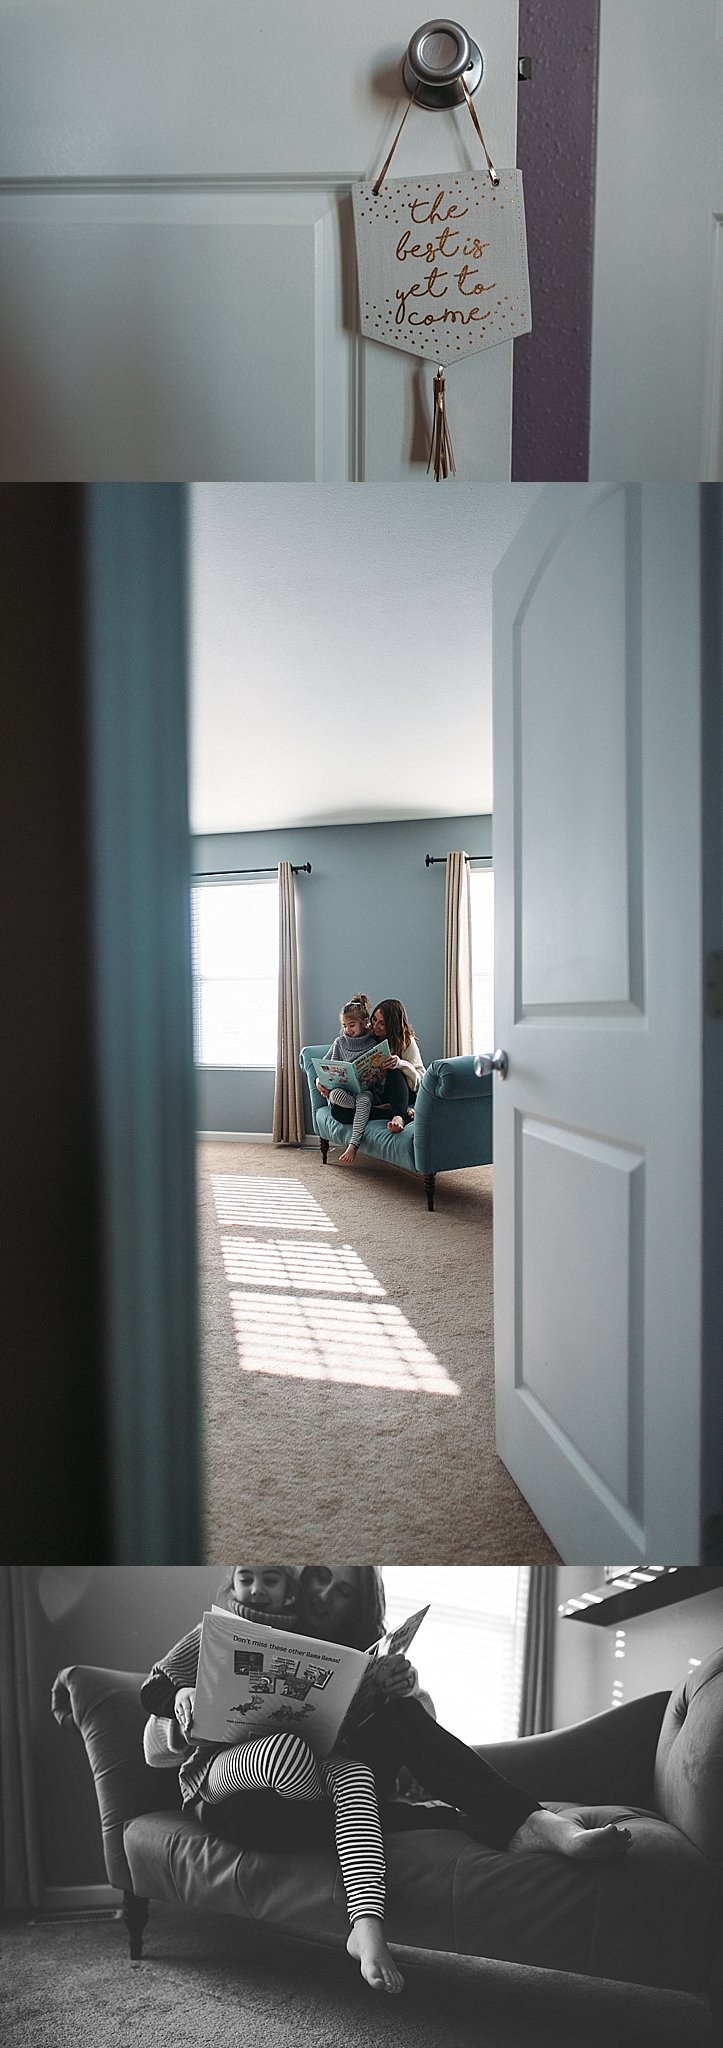 mom reading to daughter in bedroom